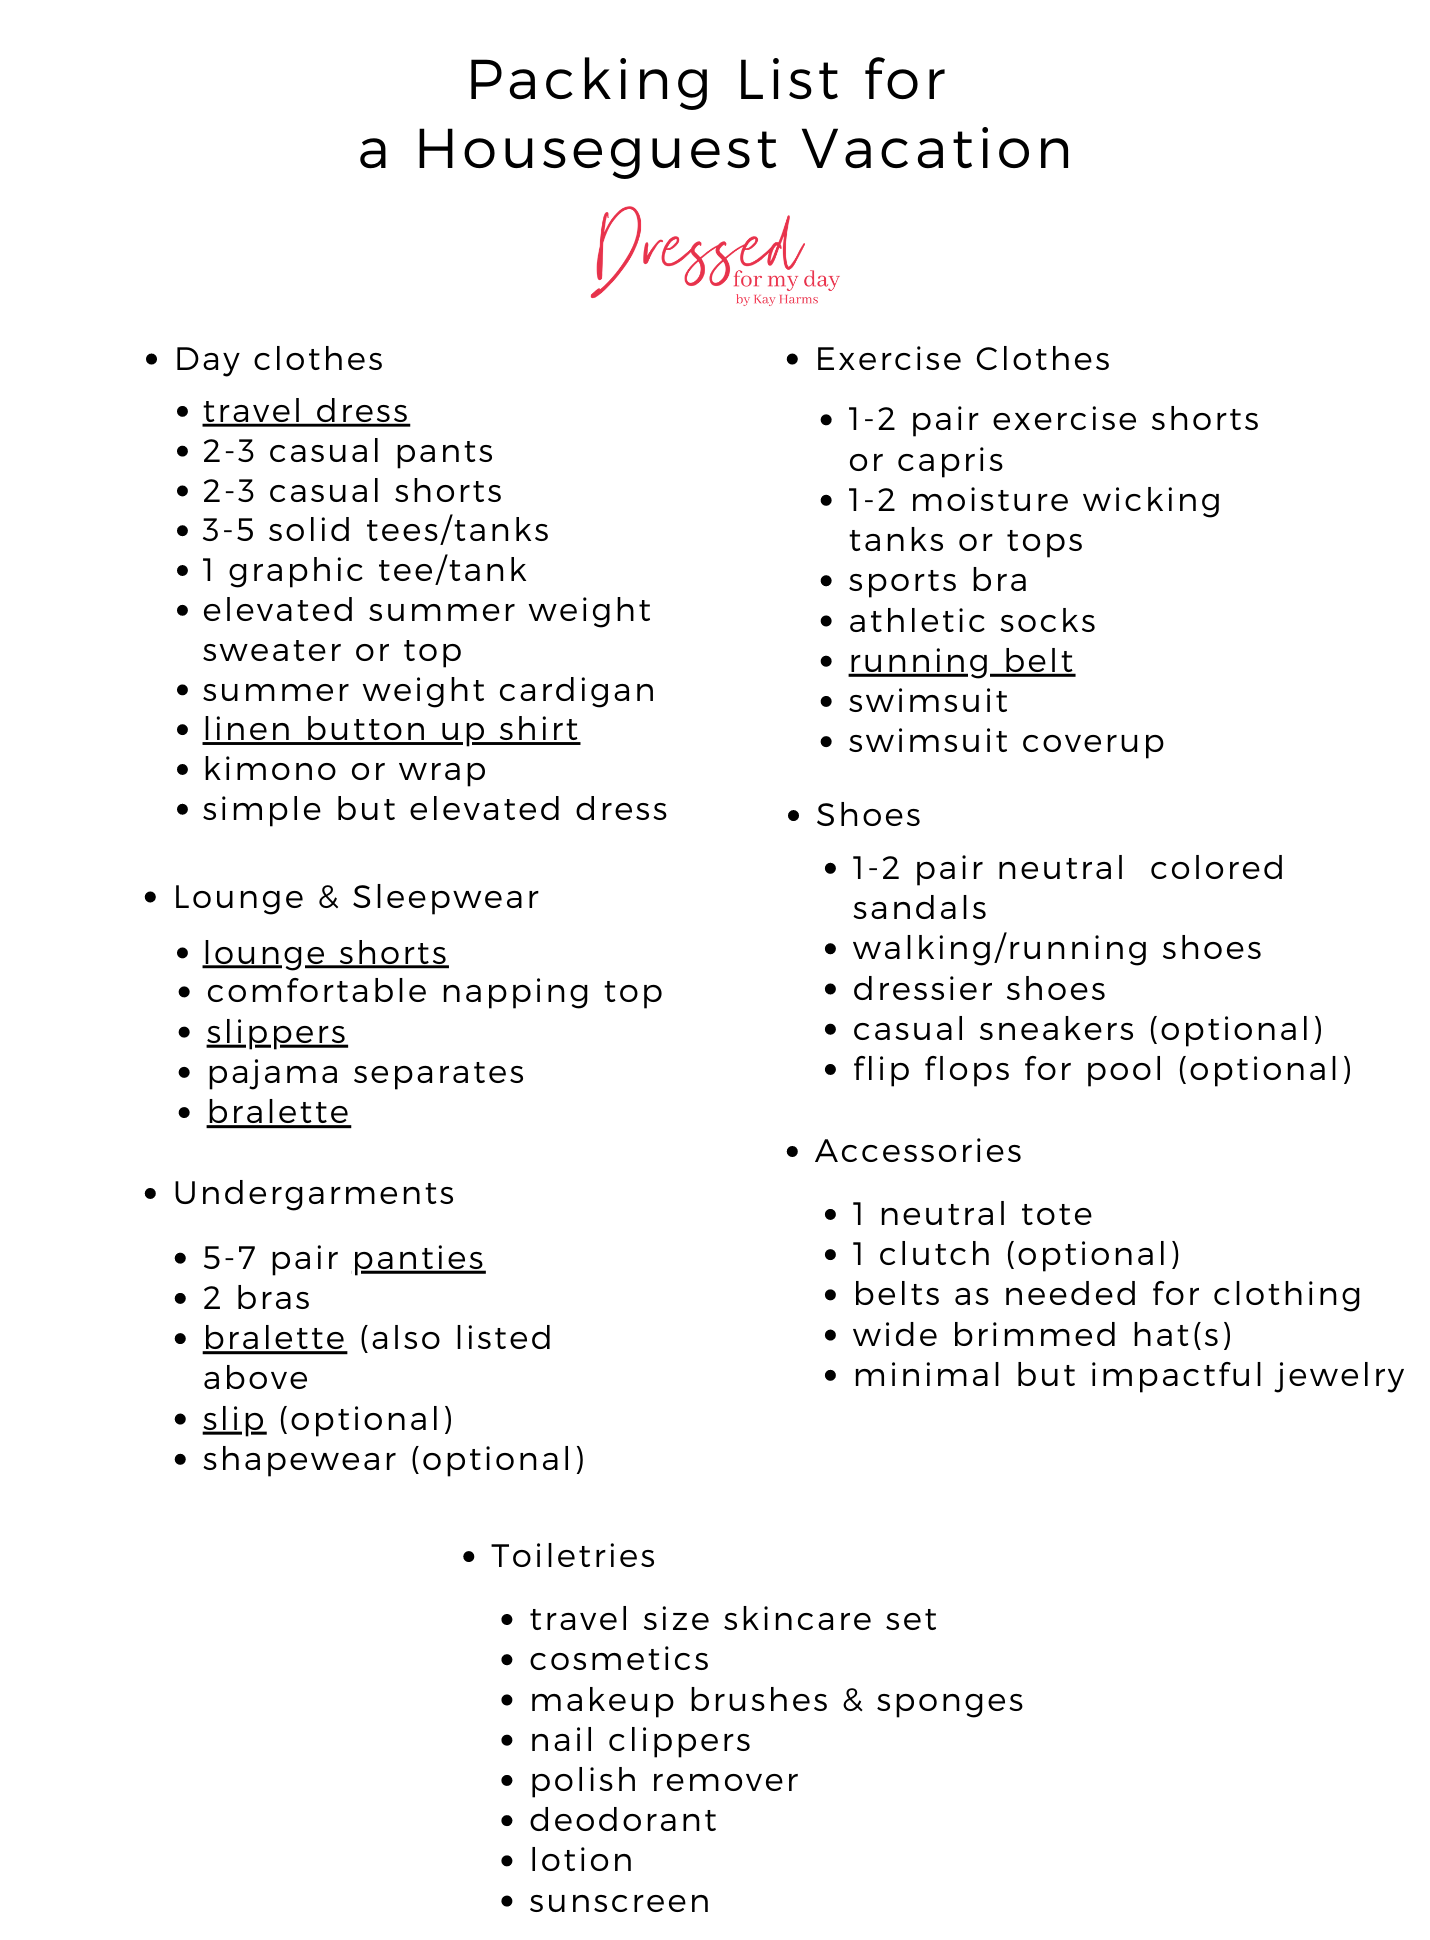 Packing List for a Houseguest Vacation